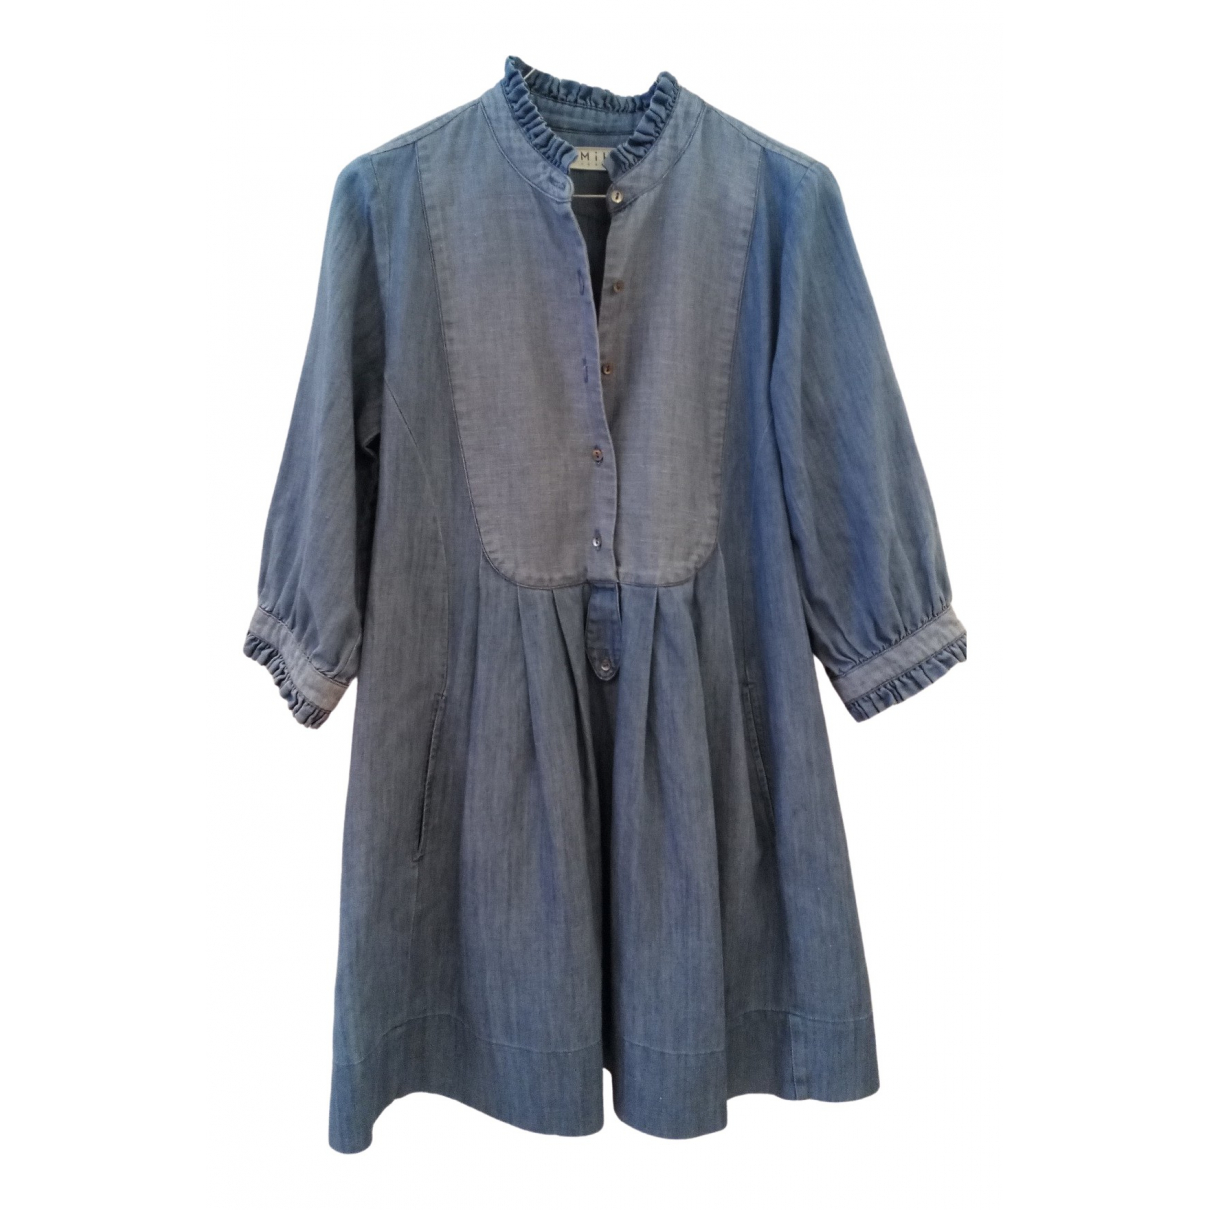 Mih Jeans \N Blue Cotton dress for Women S International